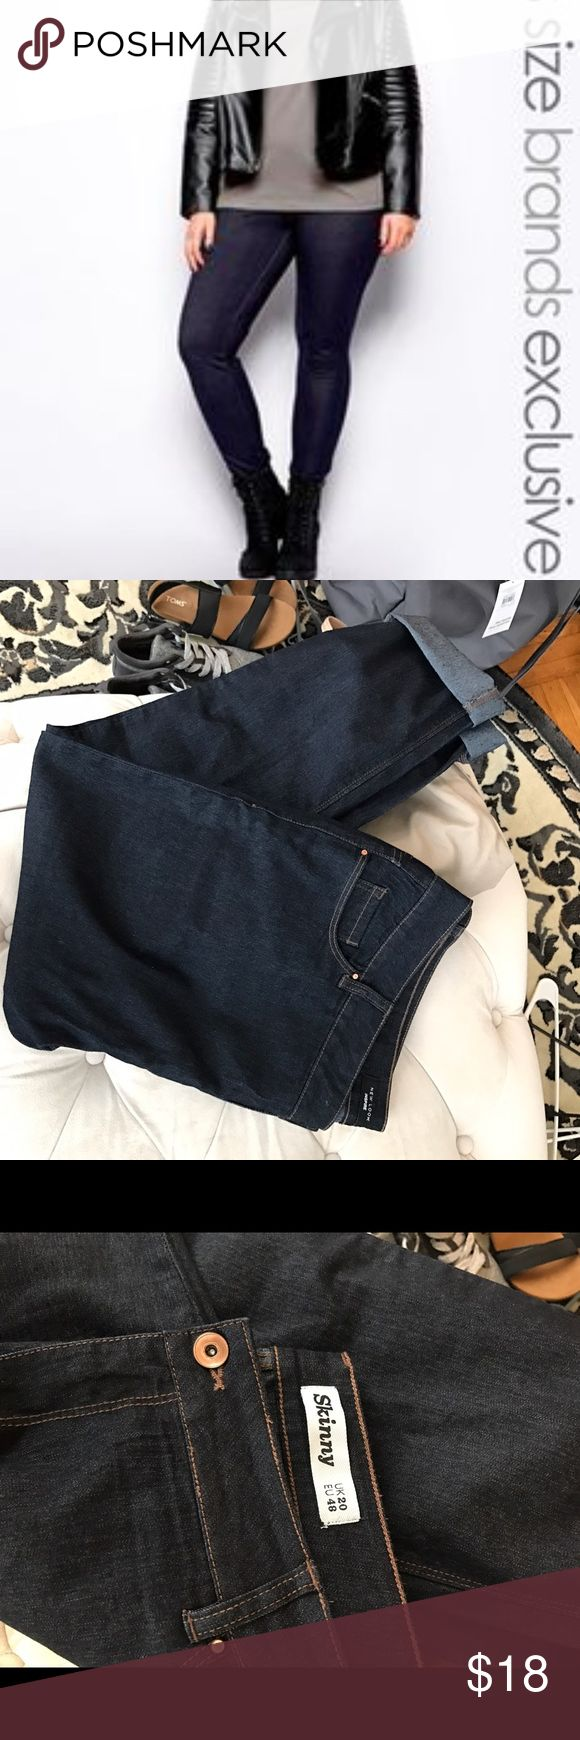 New Look Inspire Skinny Jeans New Look Inspire Skinny Jeans. These are incredibly nice looking jeans, I just bought the wrong size! US16, UK20 NWOT New Look Jeans Skinny